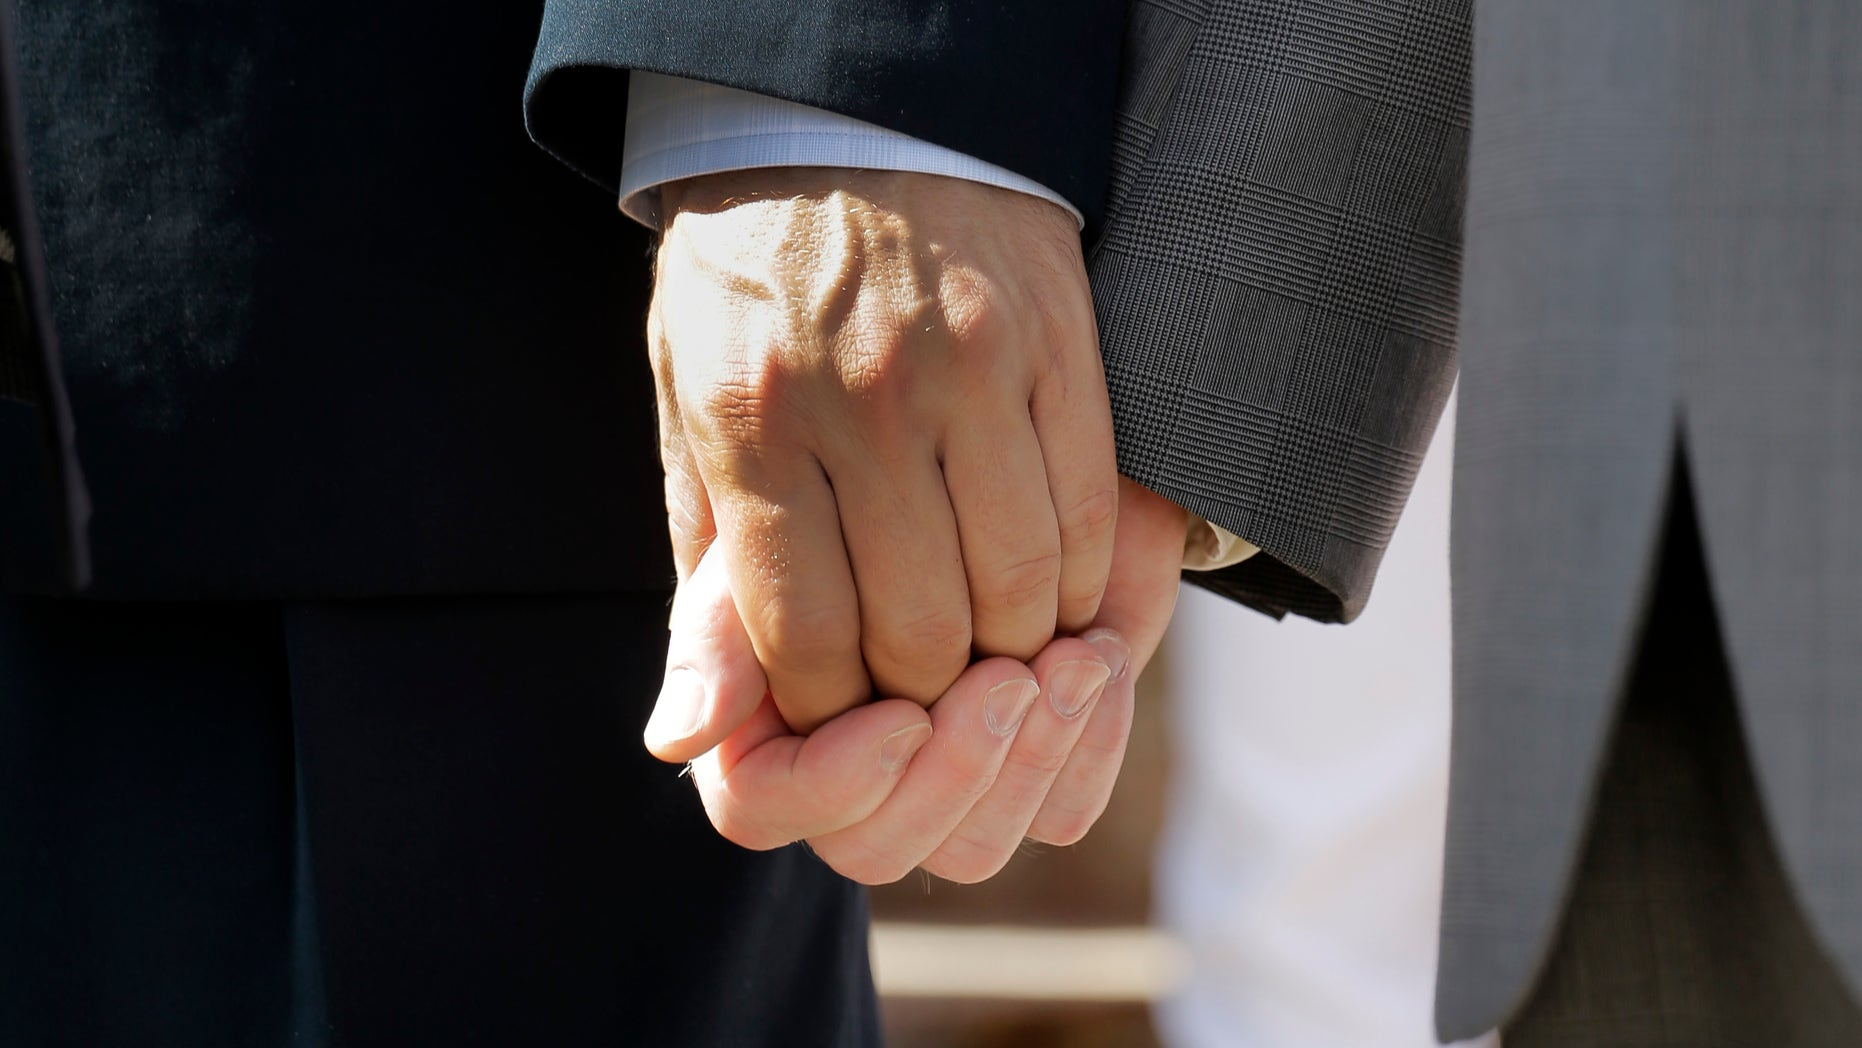 FILE - In this June 29, 2015 file photo, a gay couple holds hands during a news conference celebrating marriage equality in Austin, Texas. A government survey released on Thursday, March 17, 2016, finds growing acceptance of gay relationships, living together before marriage, and other changes in American family relationships. (AP Photo/Eric Gay, File)